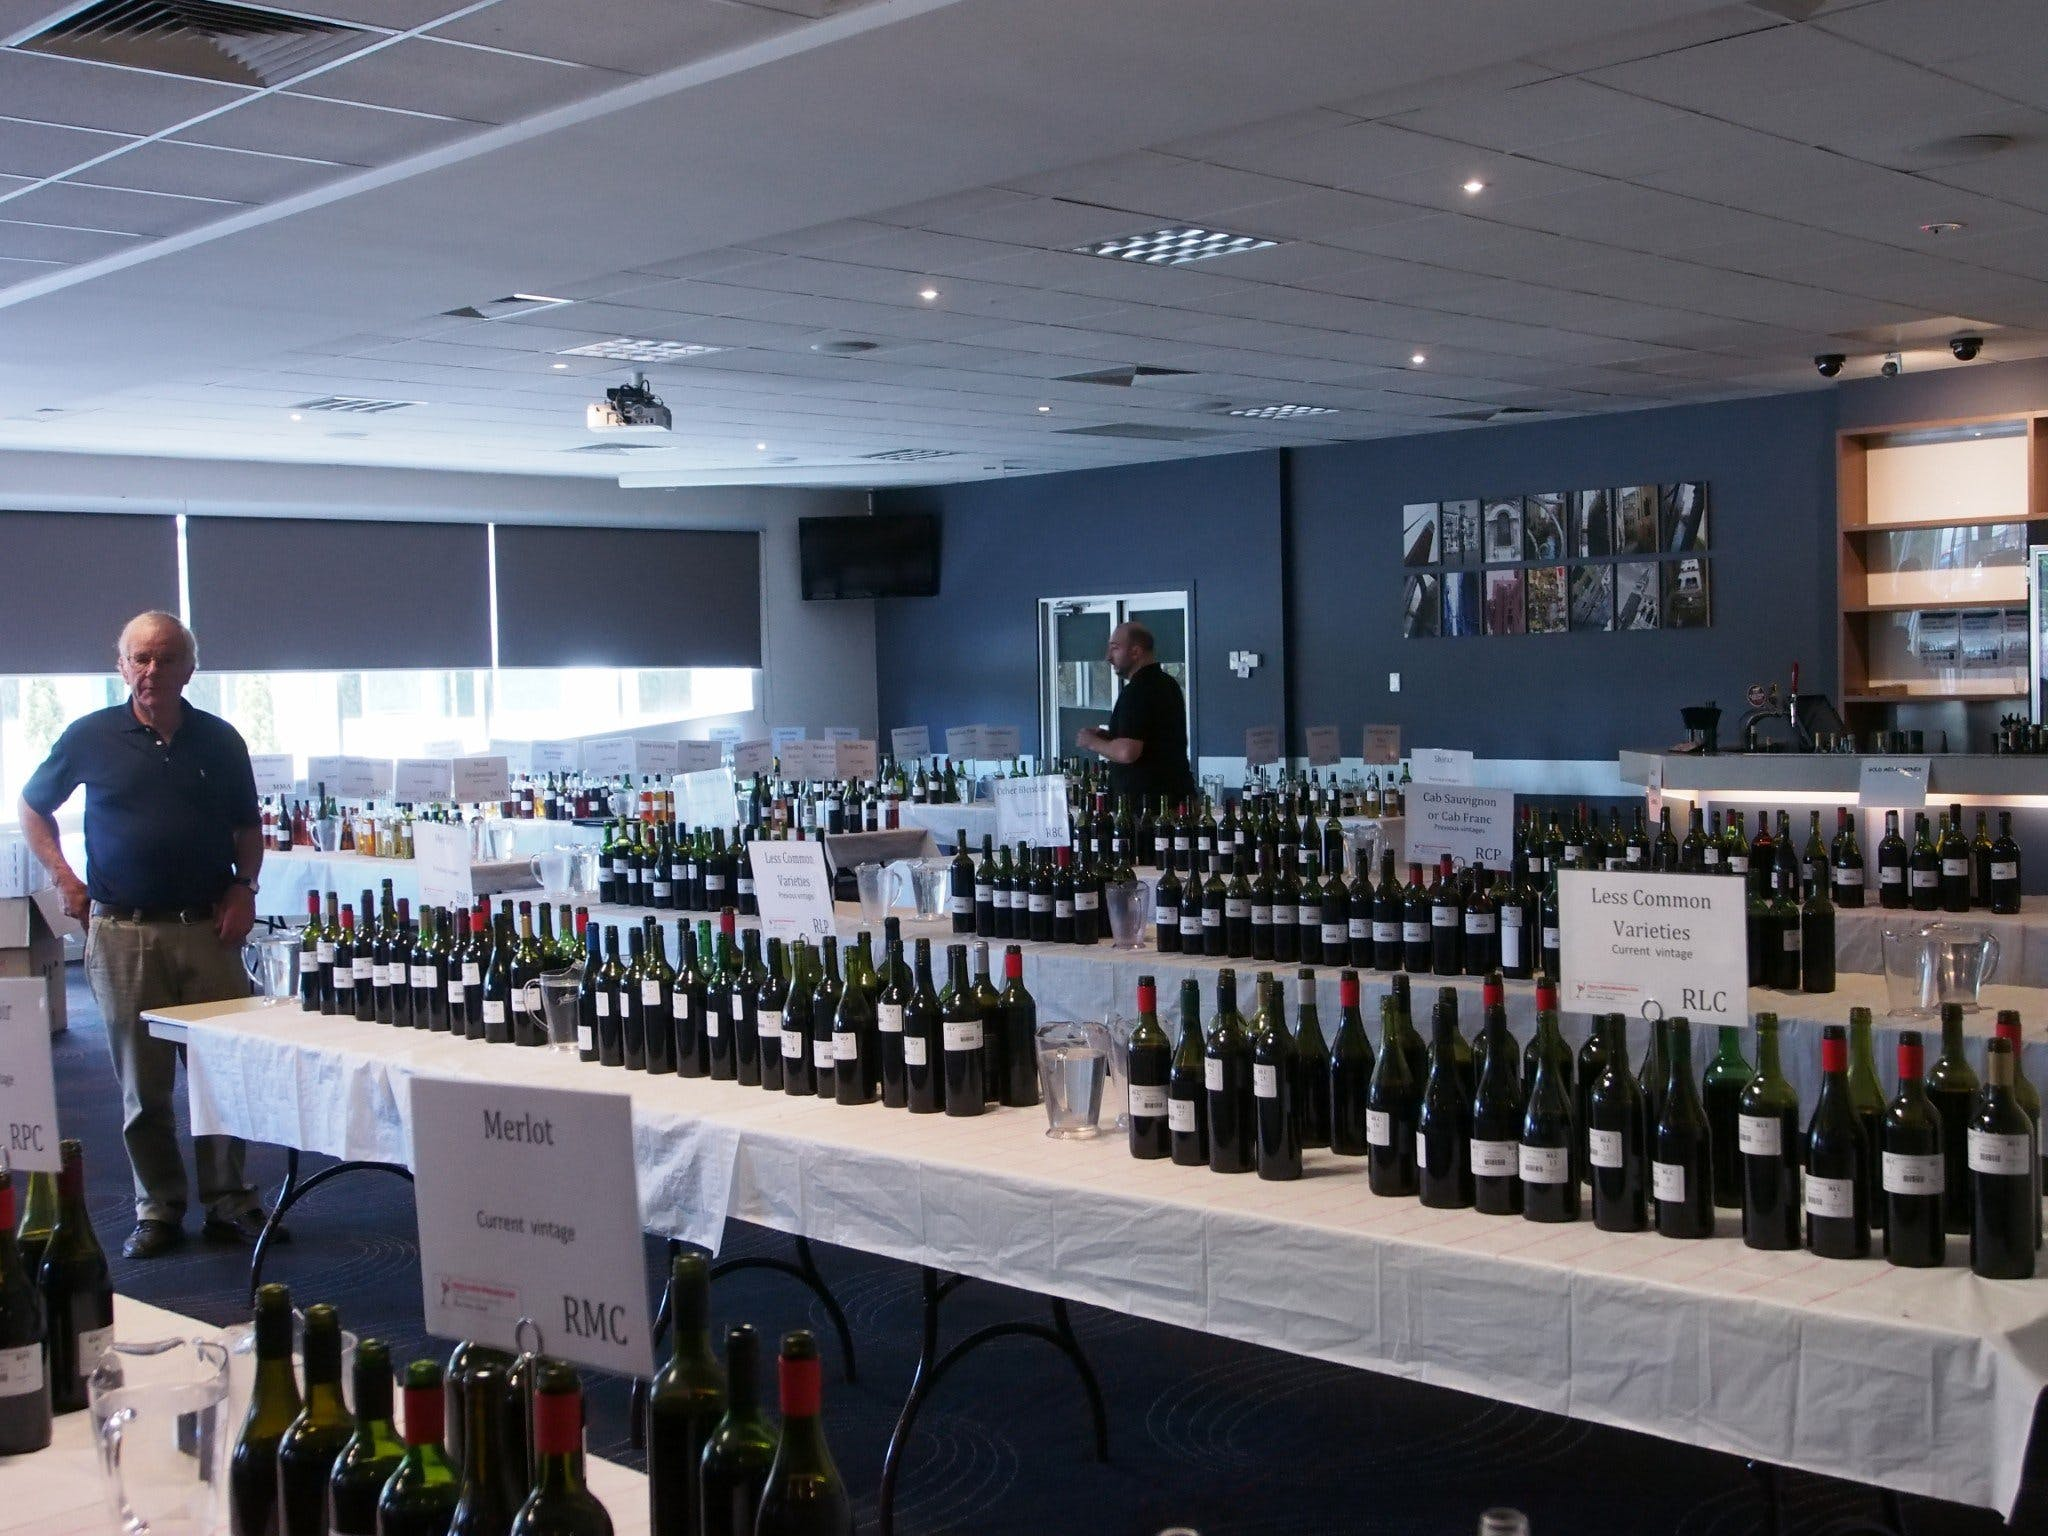 Eltham and District Wine Guild Annual Wine Show - 51st Annual Show - Kempsey Accommodation